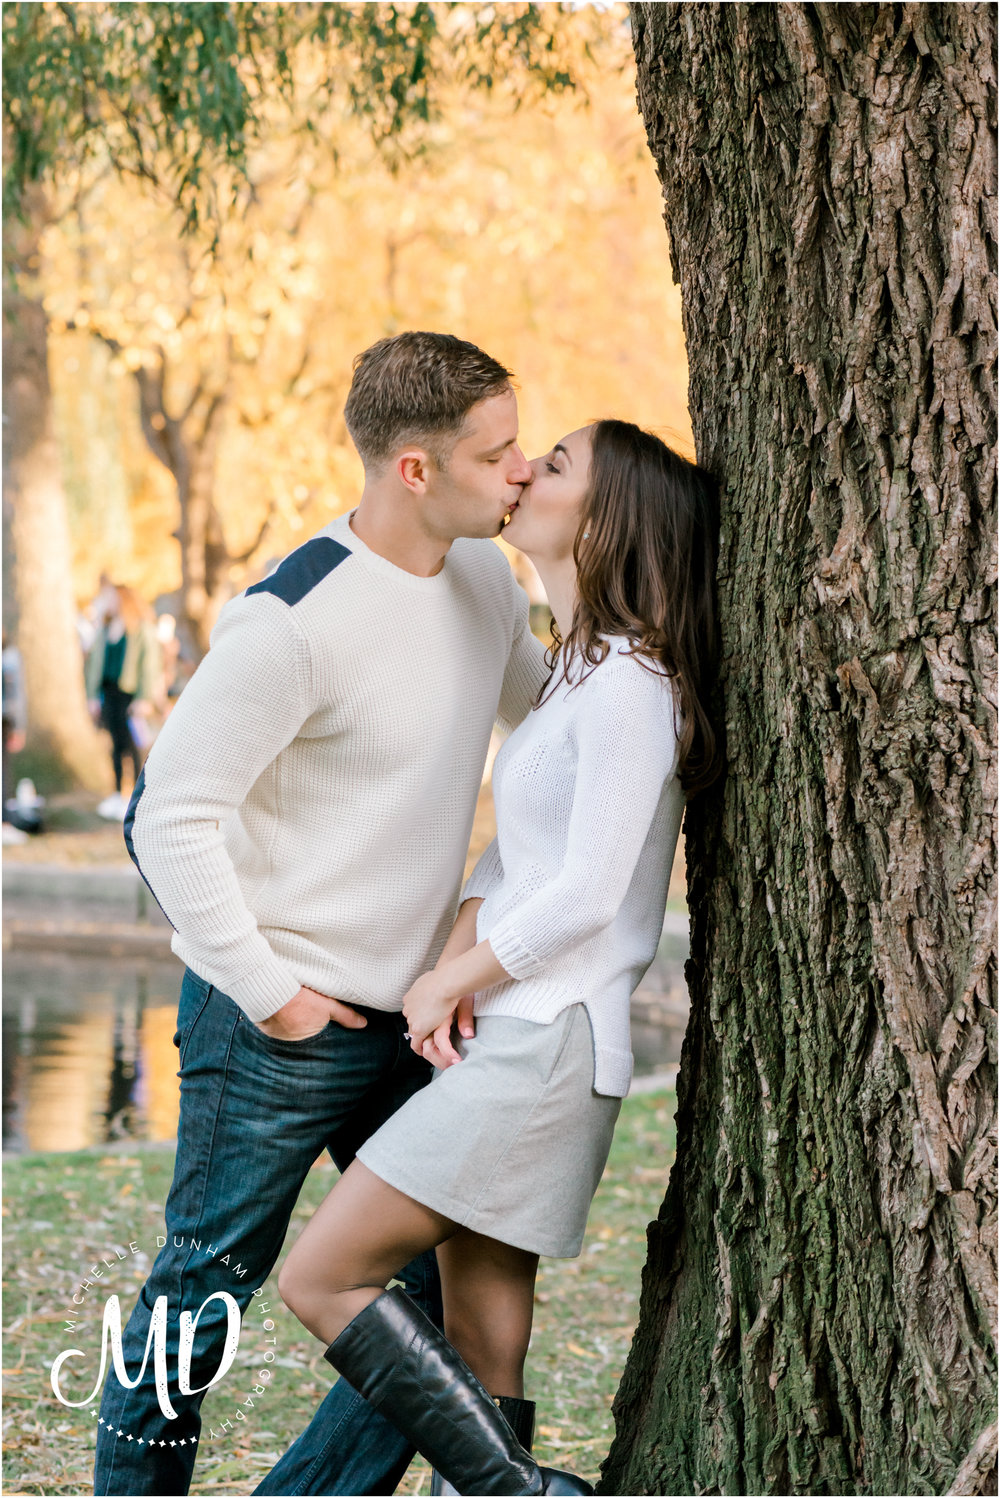 Michelle-Dunham-Photography-Engagement-Public-Garden-Boston-22.jpg